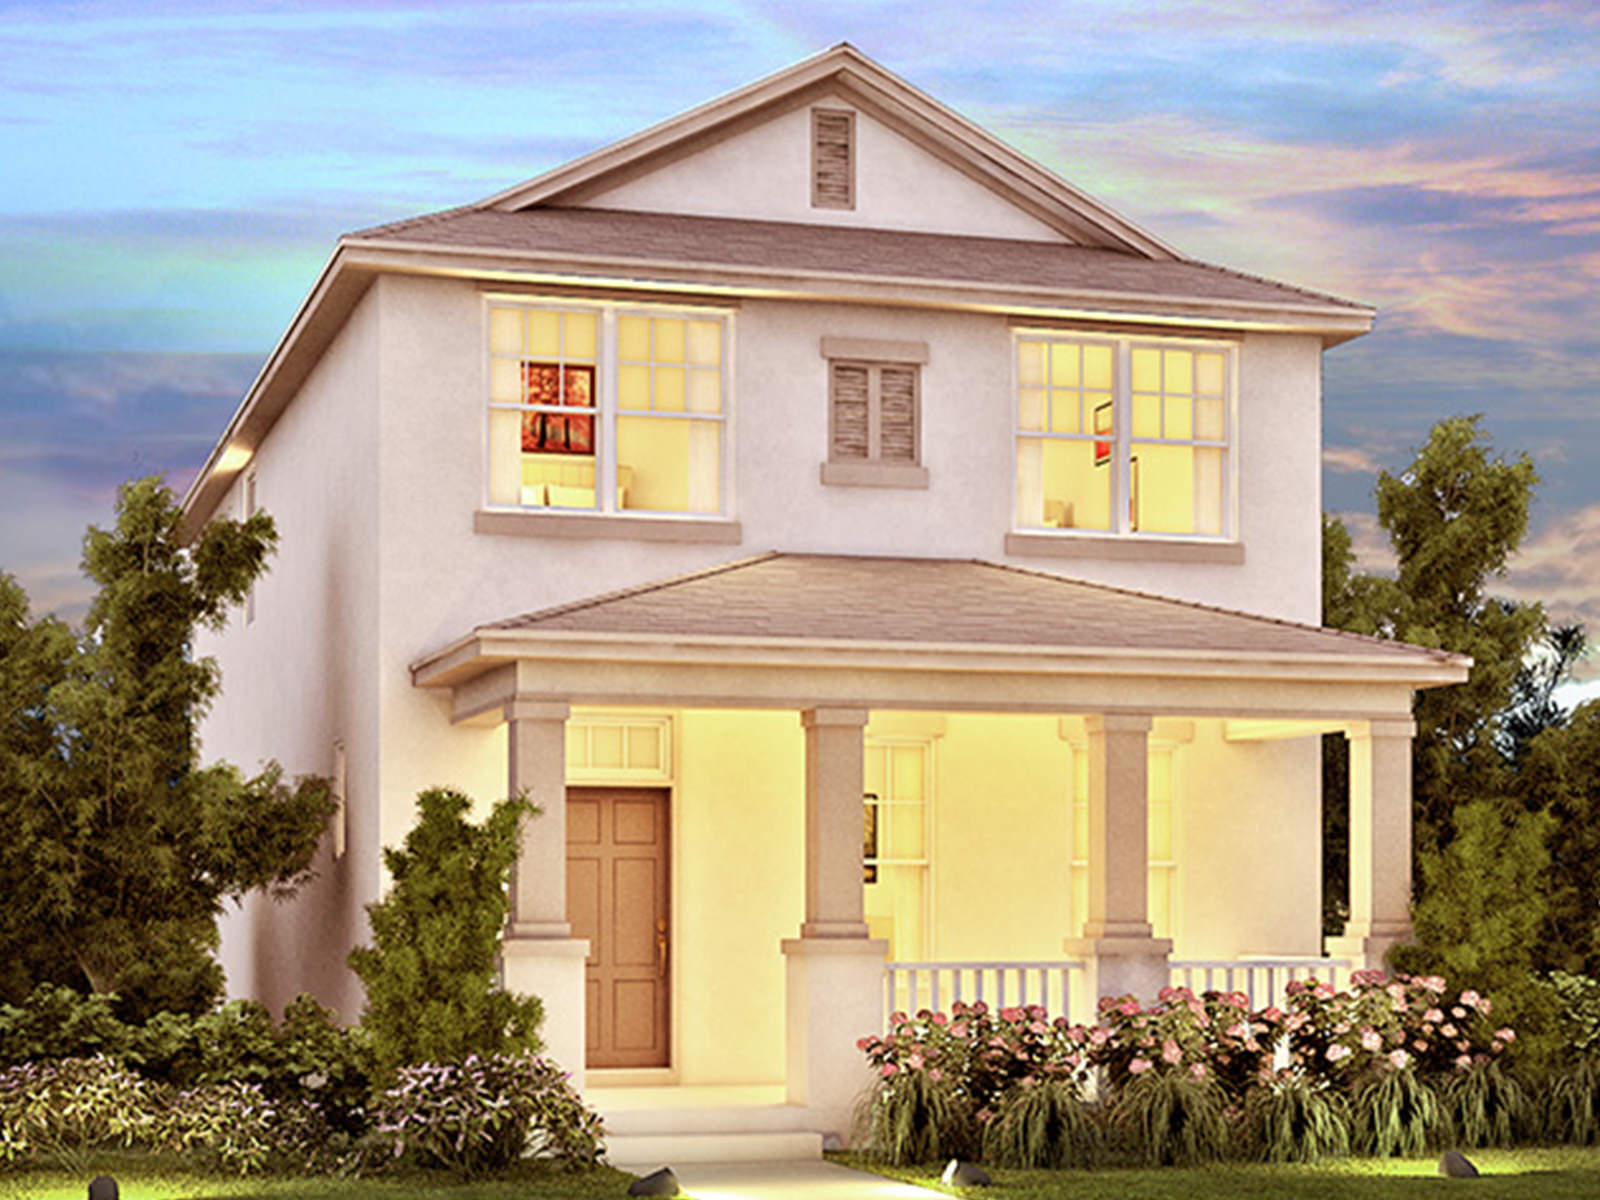 angelou model u2013 3br 3ba homes for sale in winter garden fl